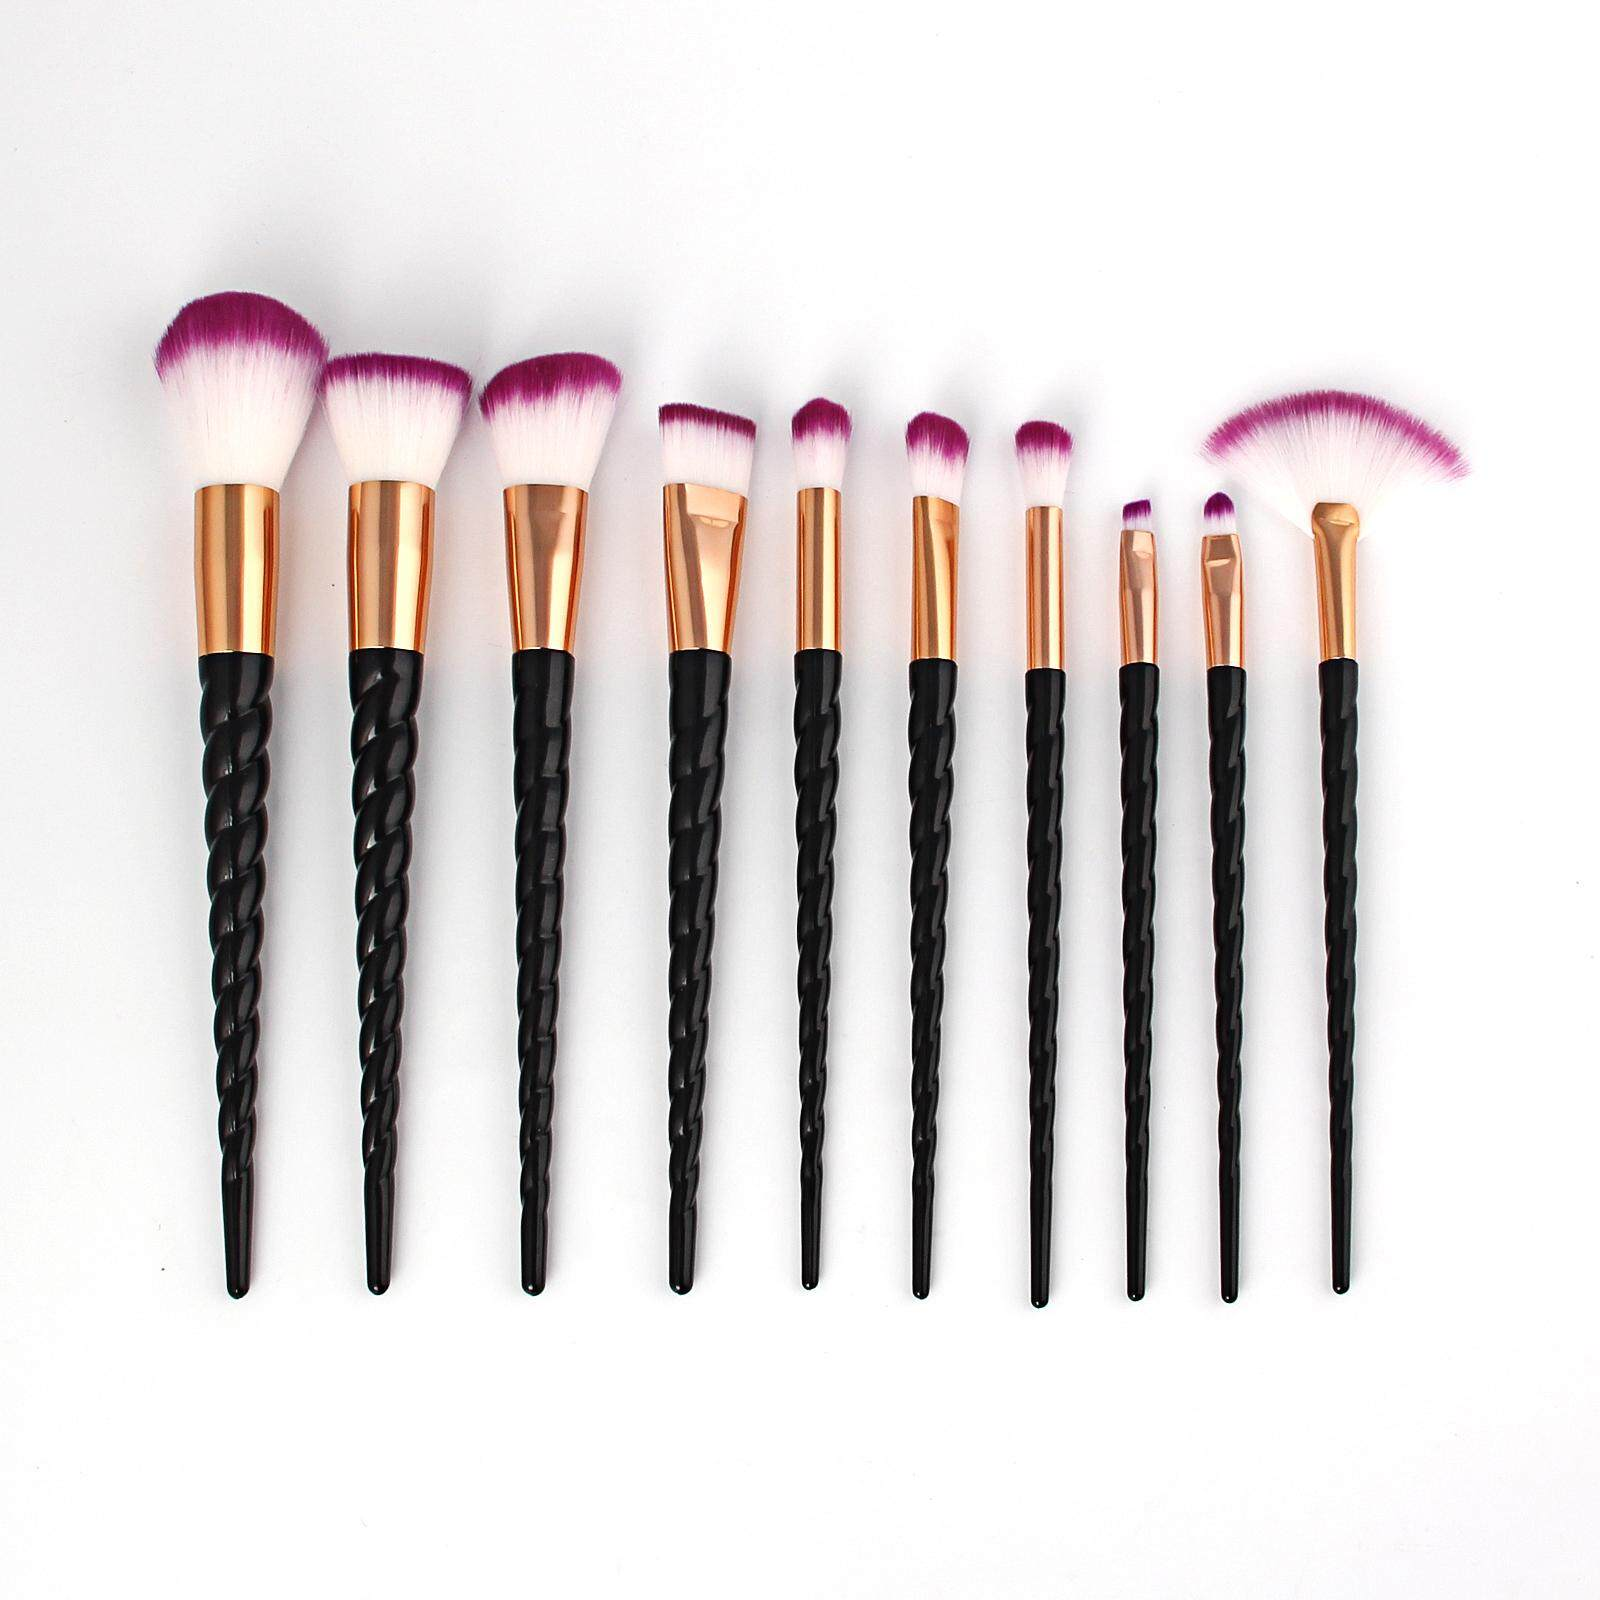 Features 10pcs Mermaid Style Pro Makeup Cosmetic Brushes Set Source · BM 10pcs black Unicorned Makeup Brushes Set Contour Powder Brush Cosmetic Tool